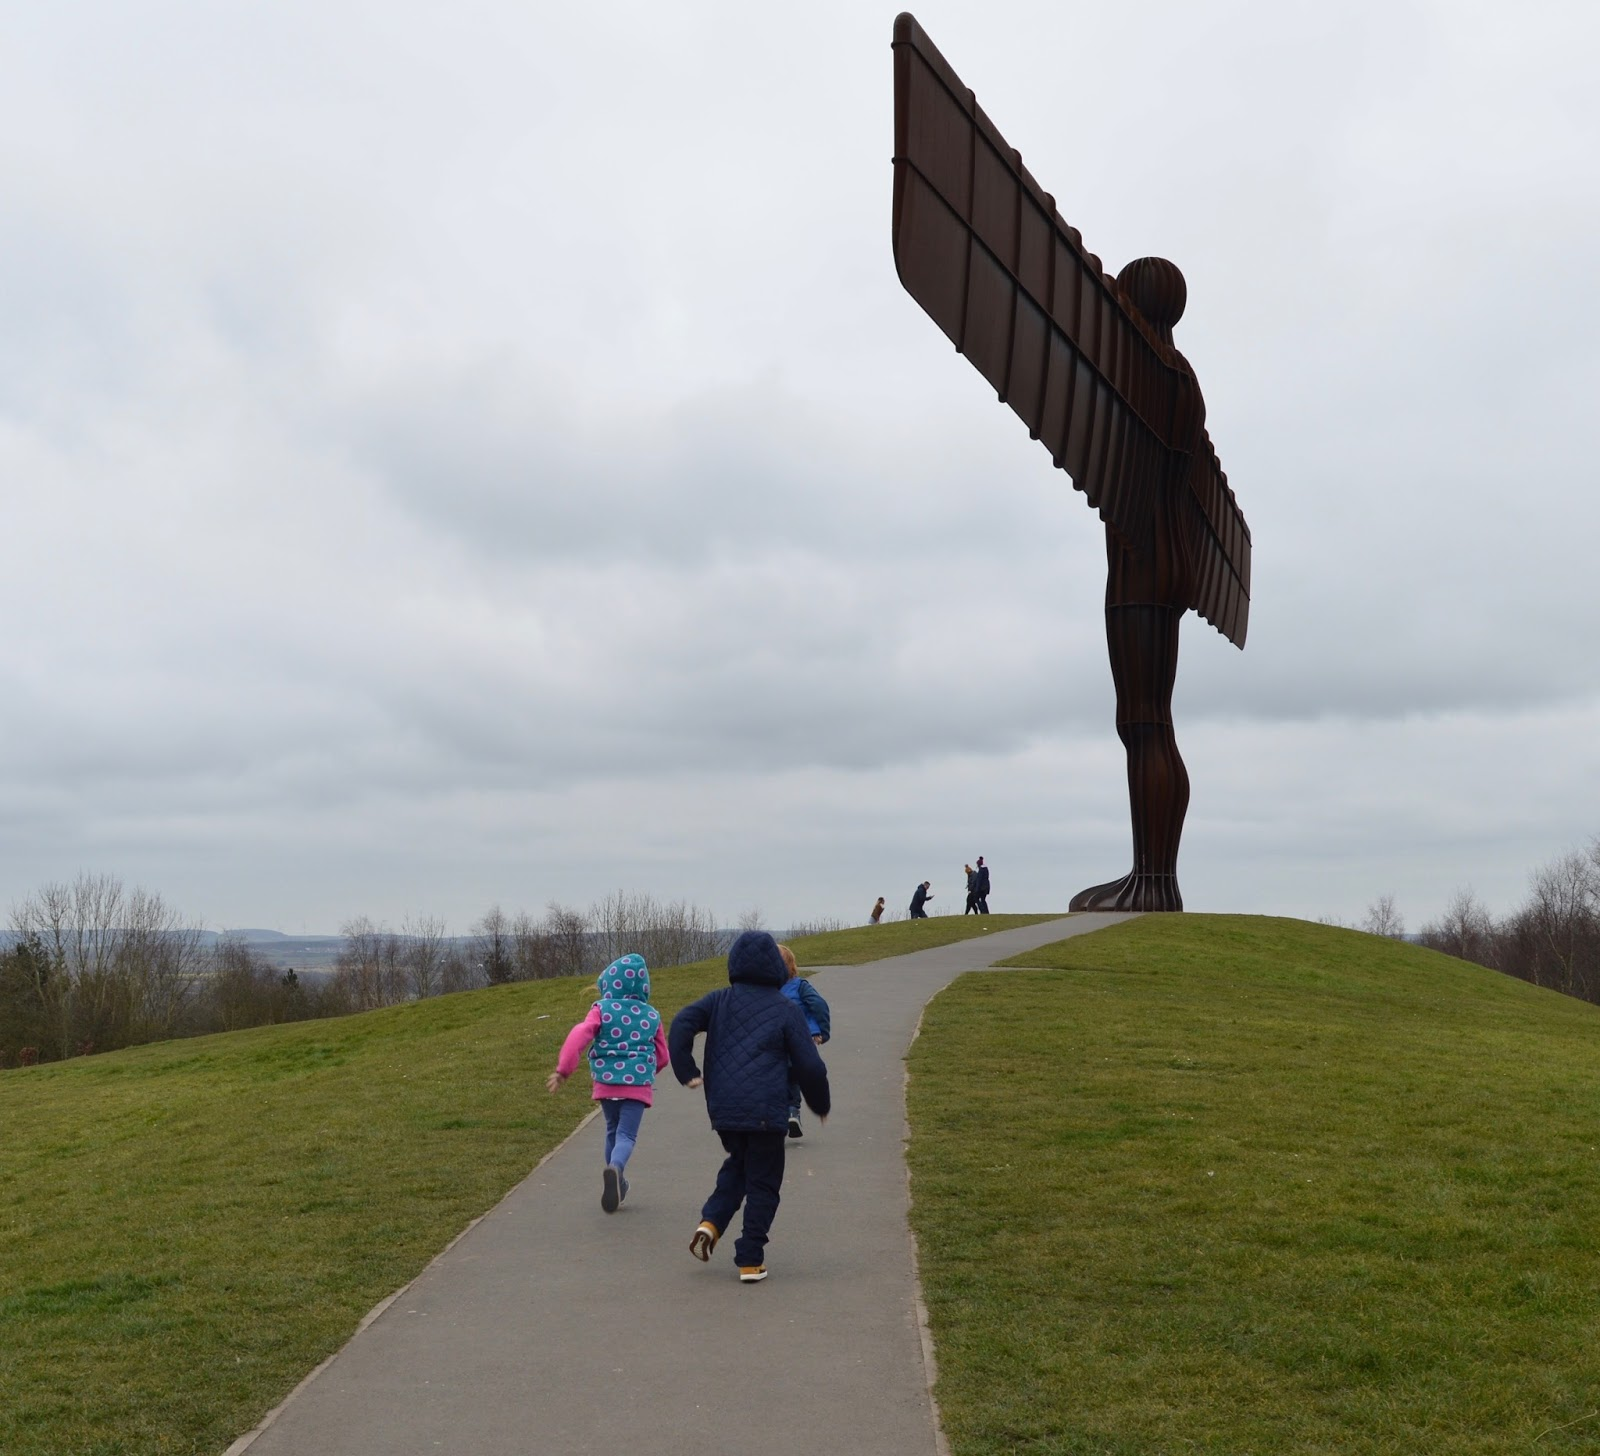 Visit the Angel of the North via bus with Go North East